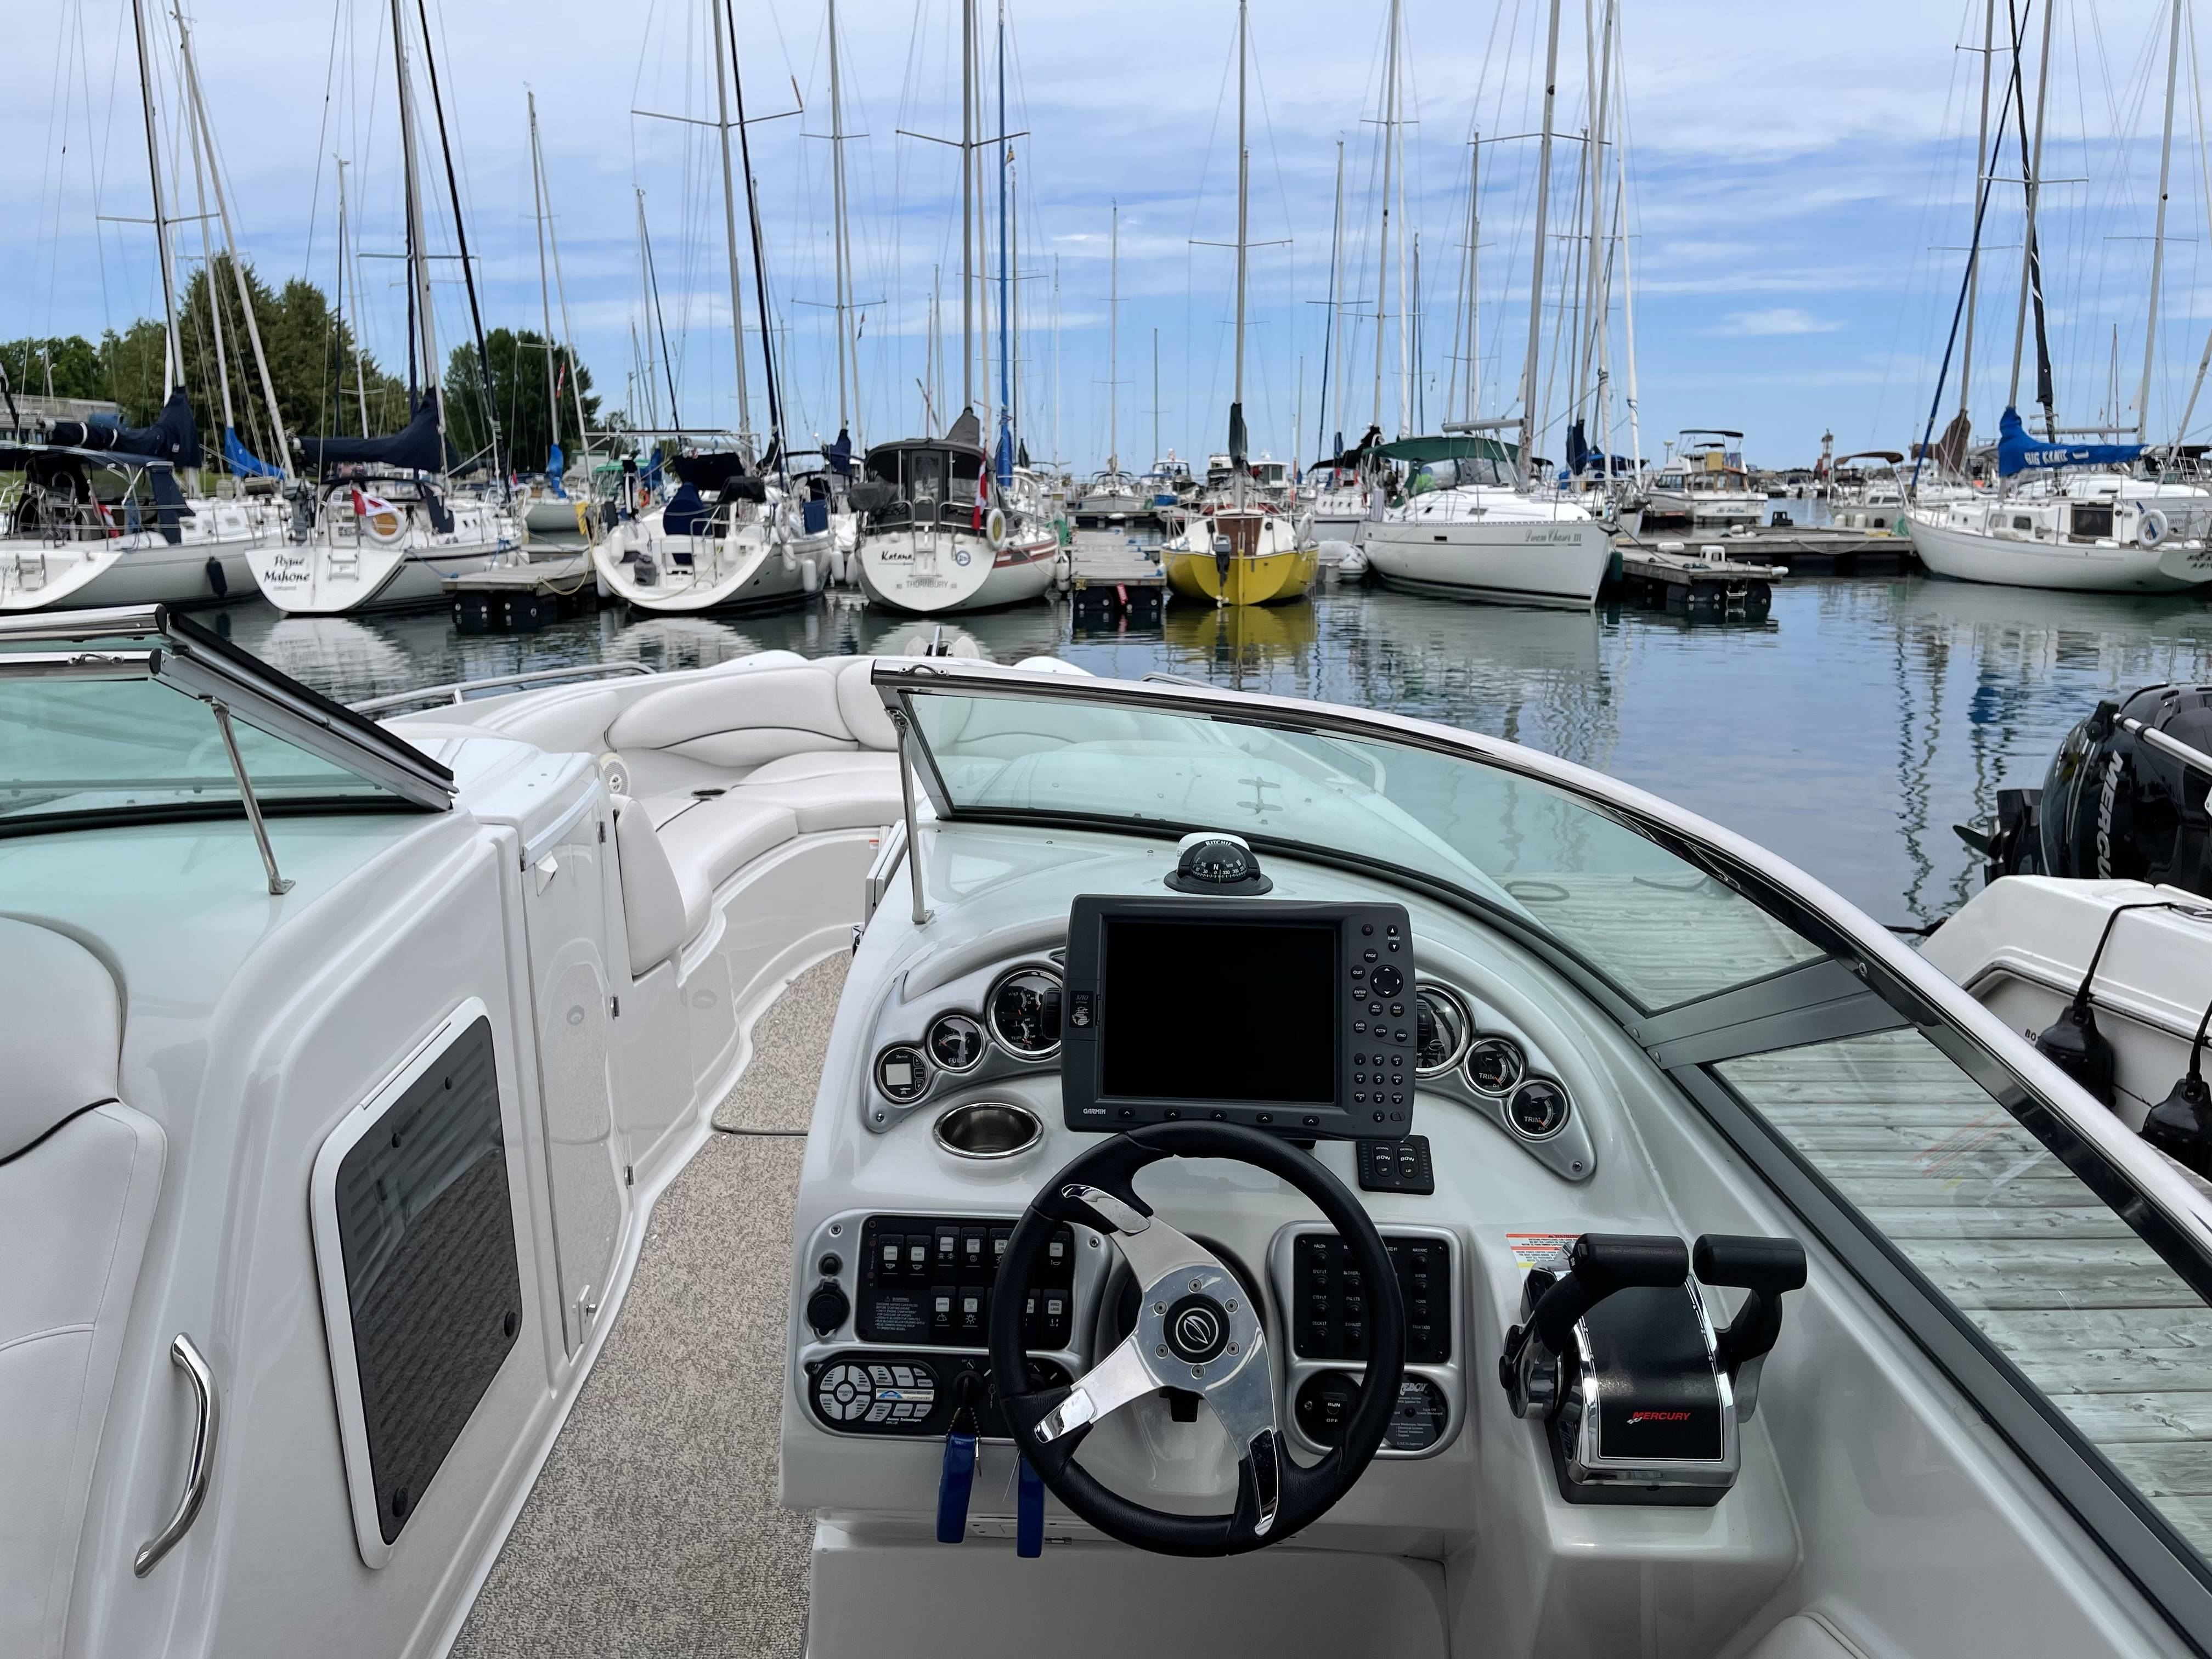 2011 Crownline boat for sale, model of the boat is 320 LS & Image # 19 of 55